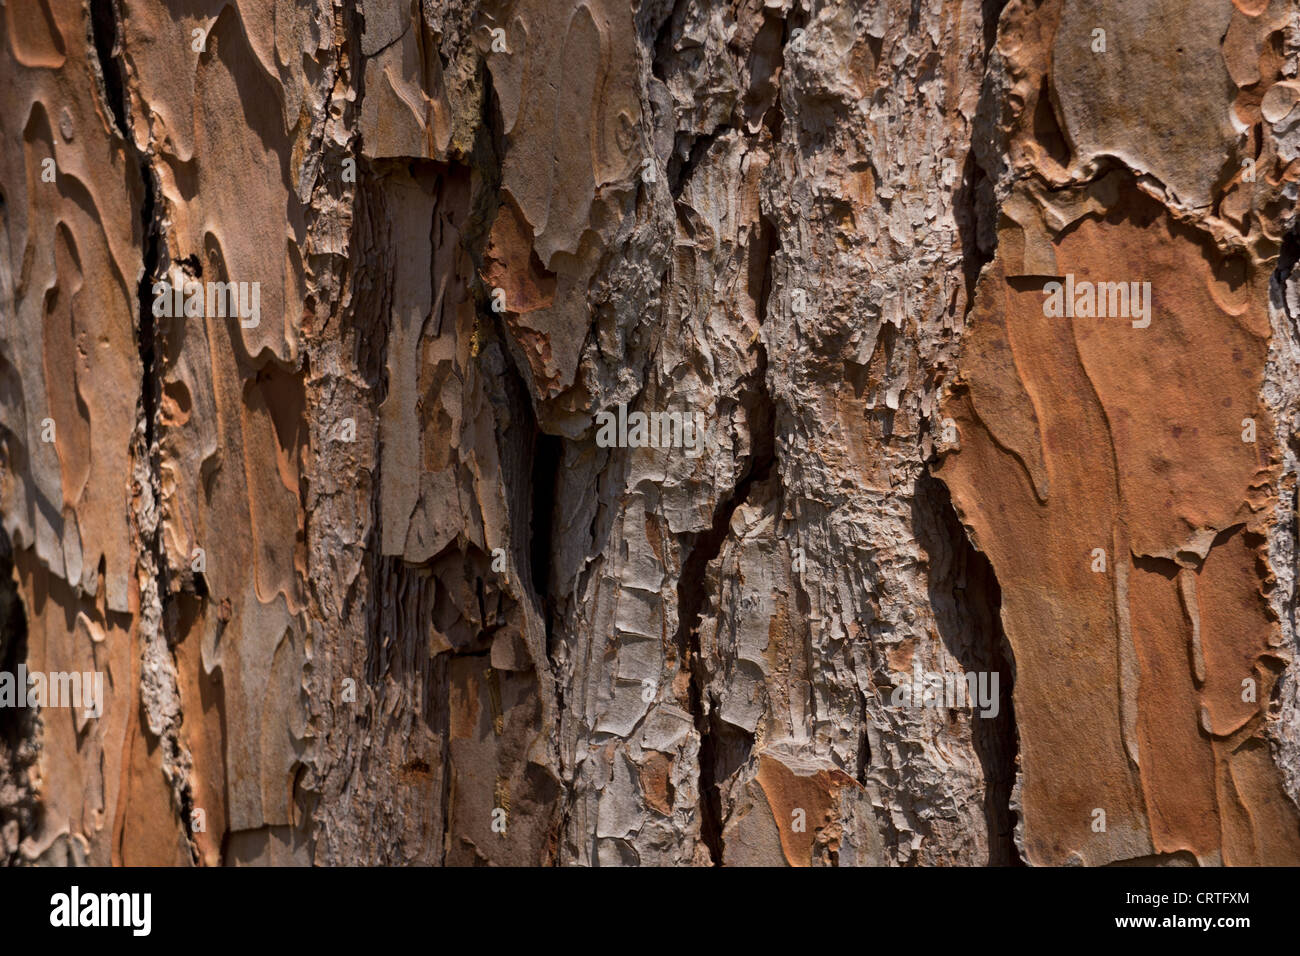 Pine trunk texture. Shallow focus. This tree is about 120 years old. Specimen: pinus pinea. - Stock Image